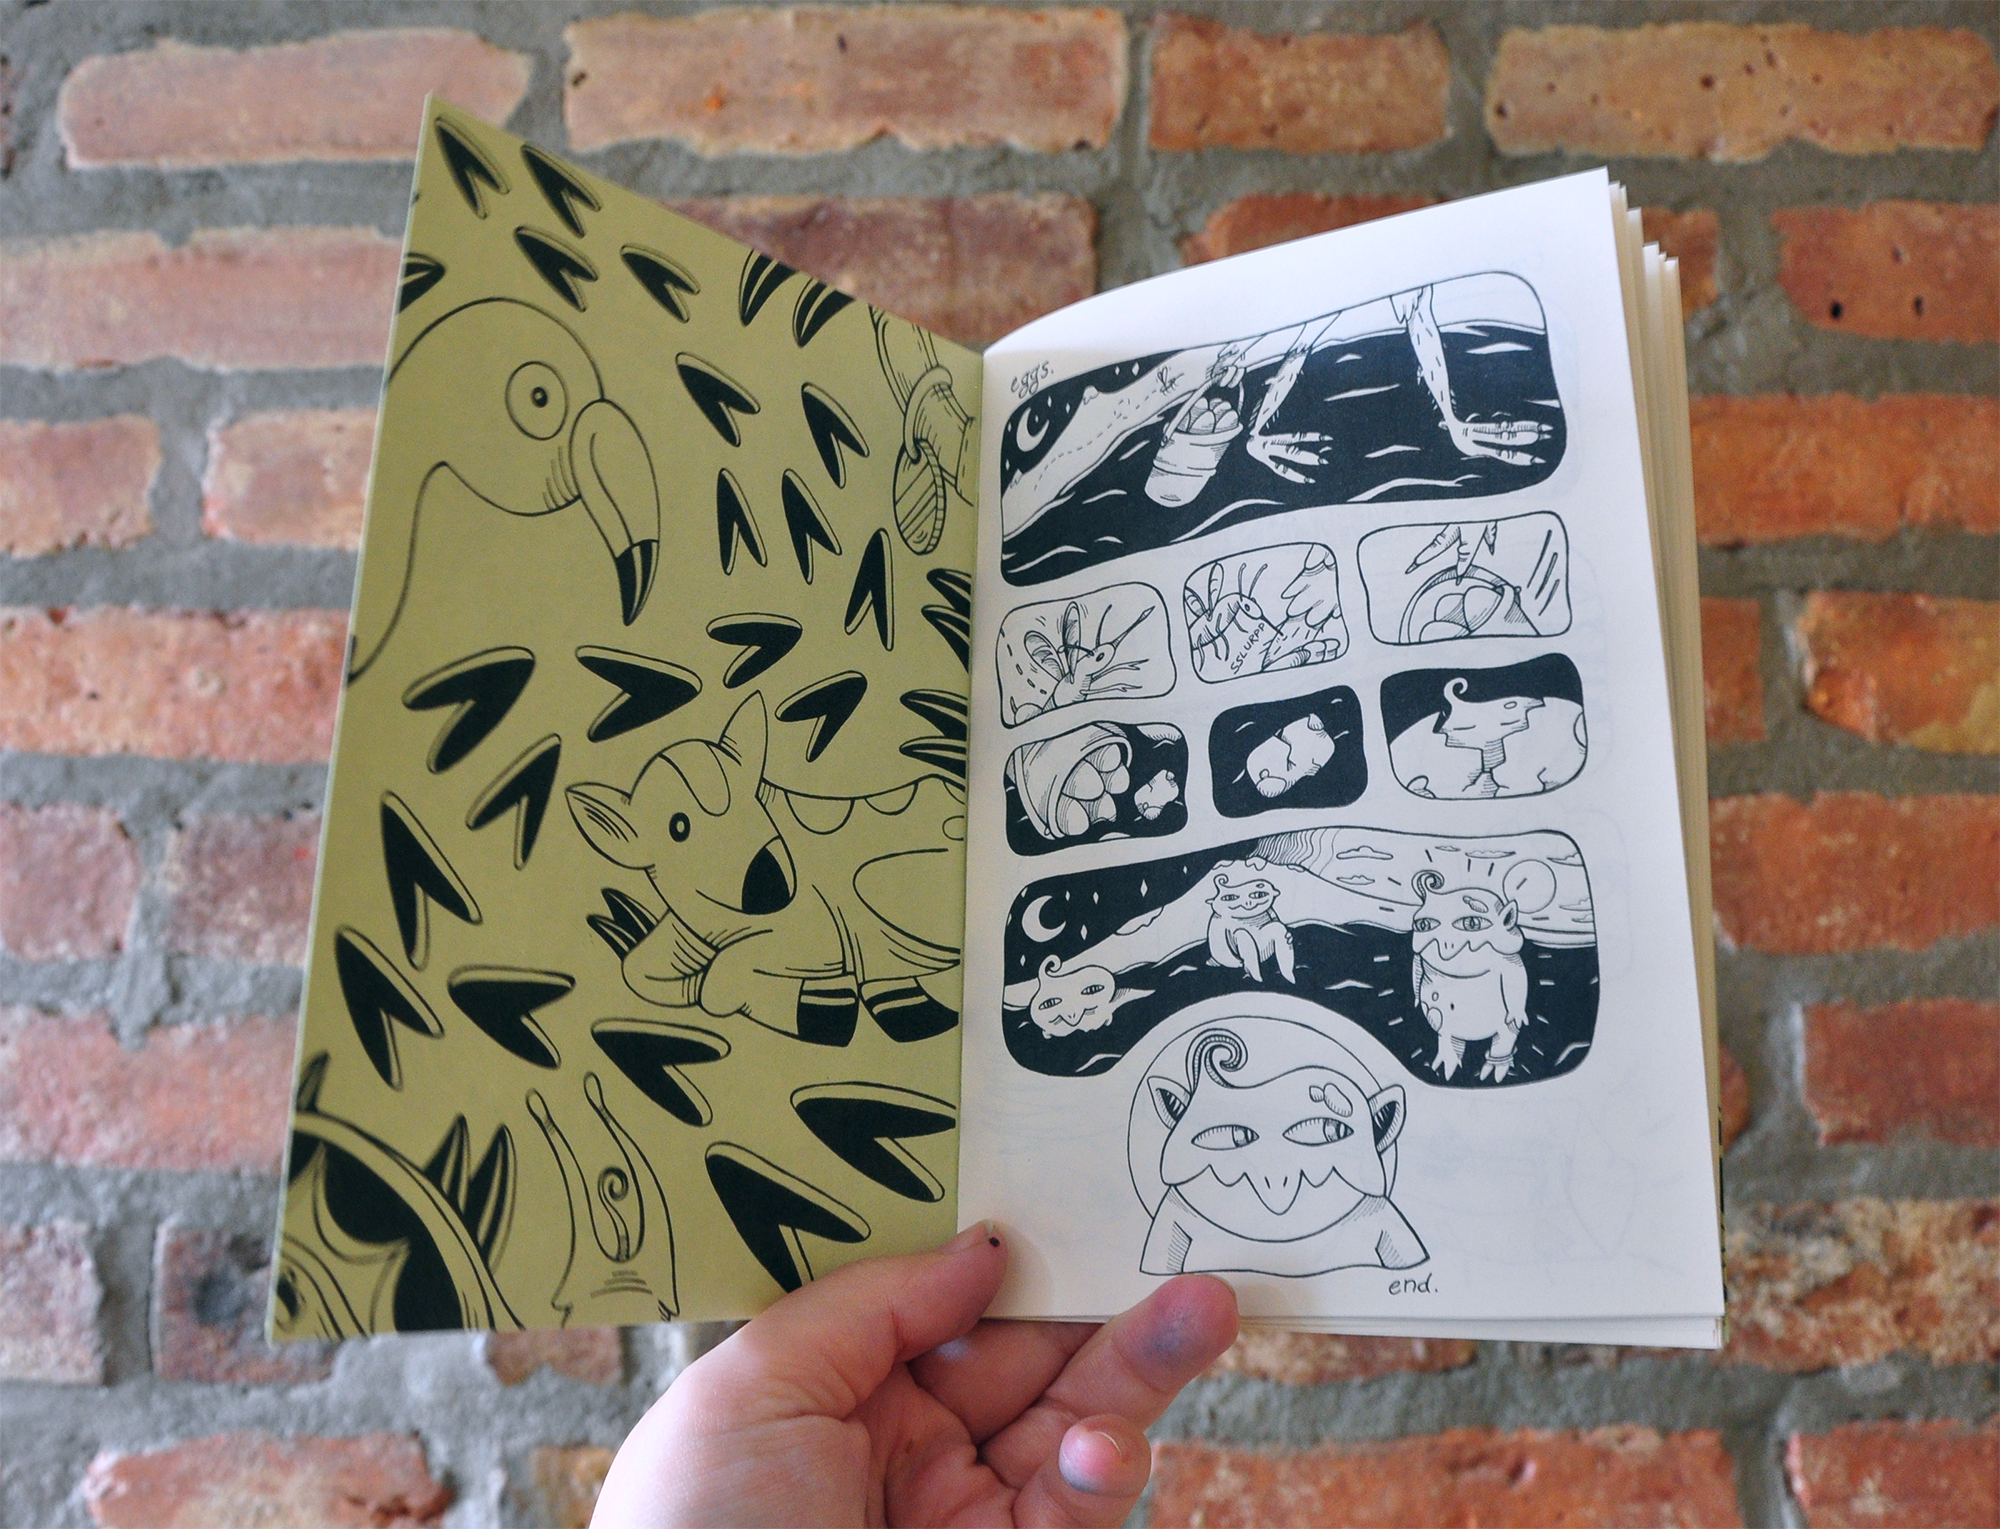 Minicomic (untitled.)